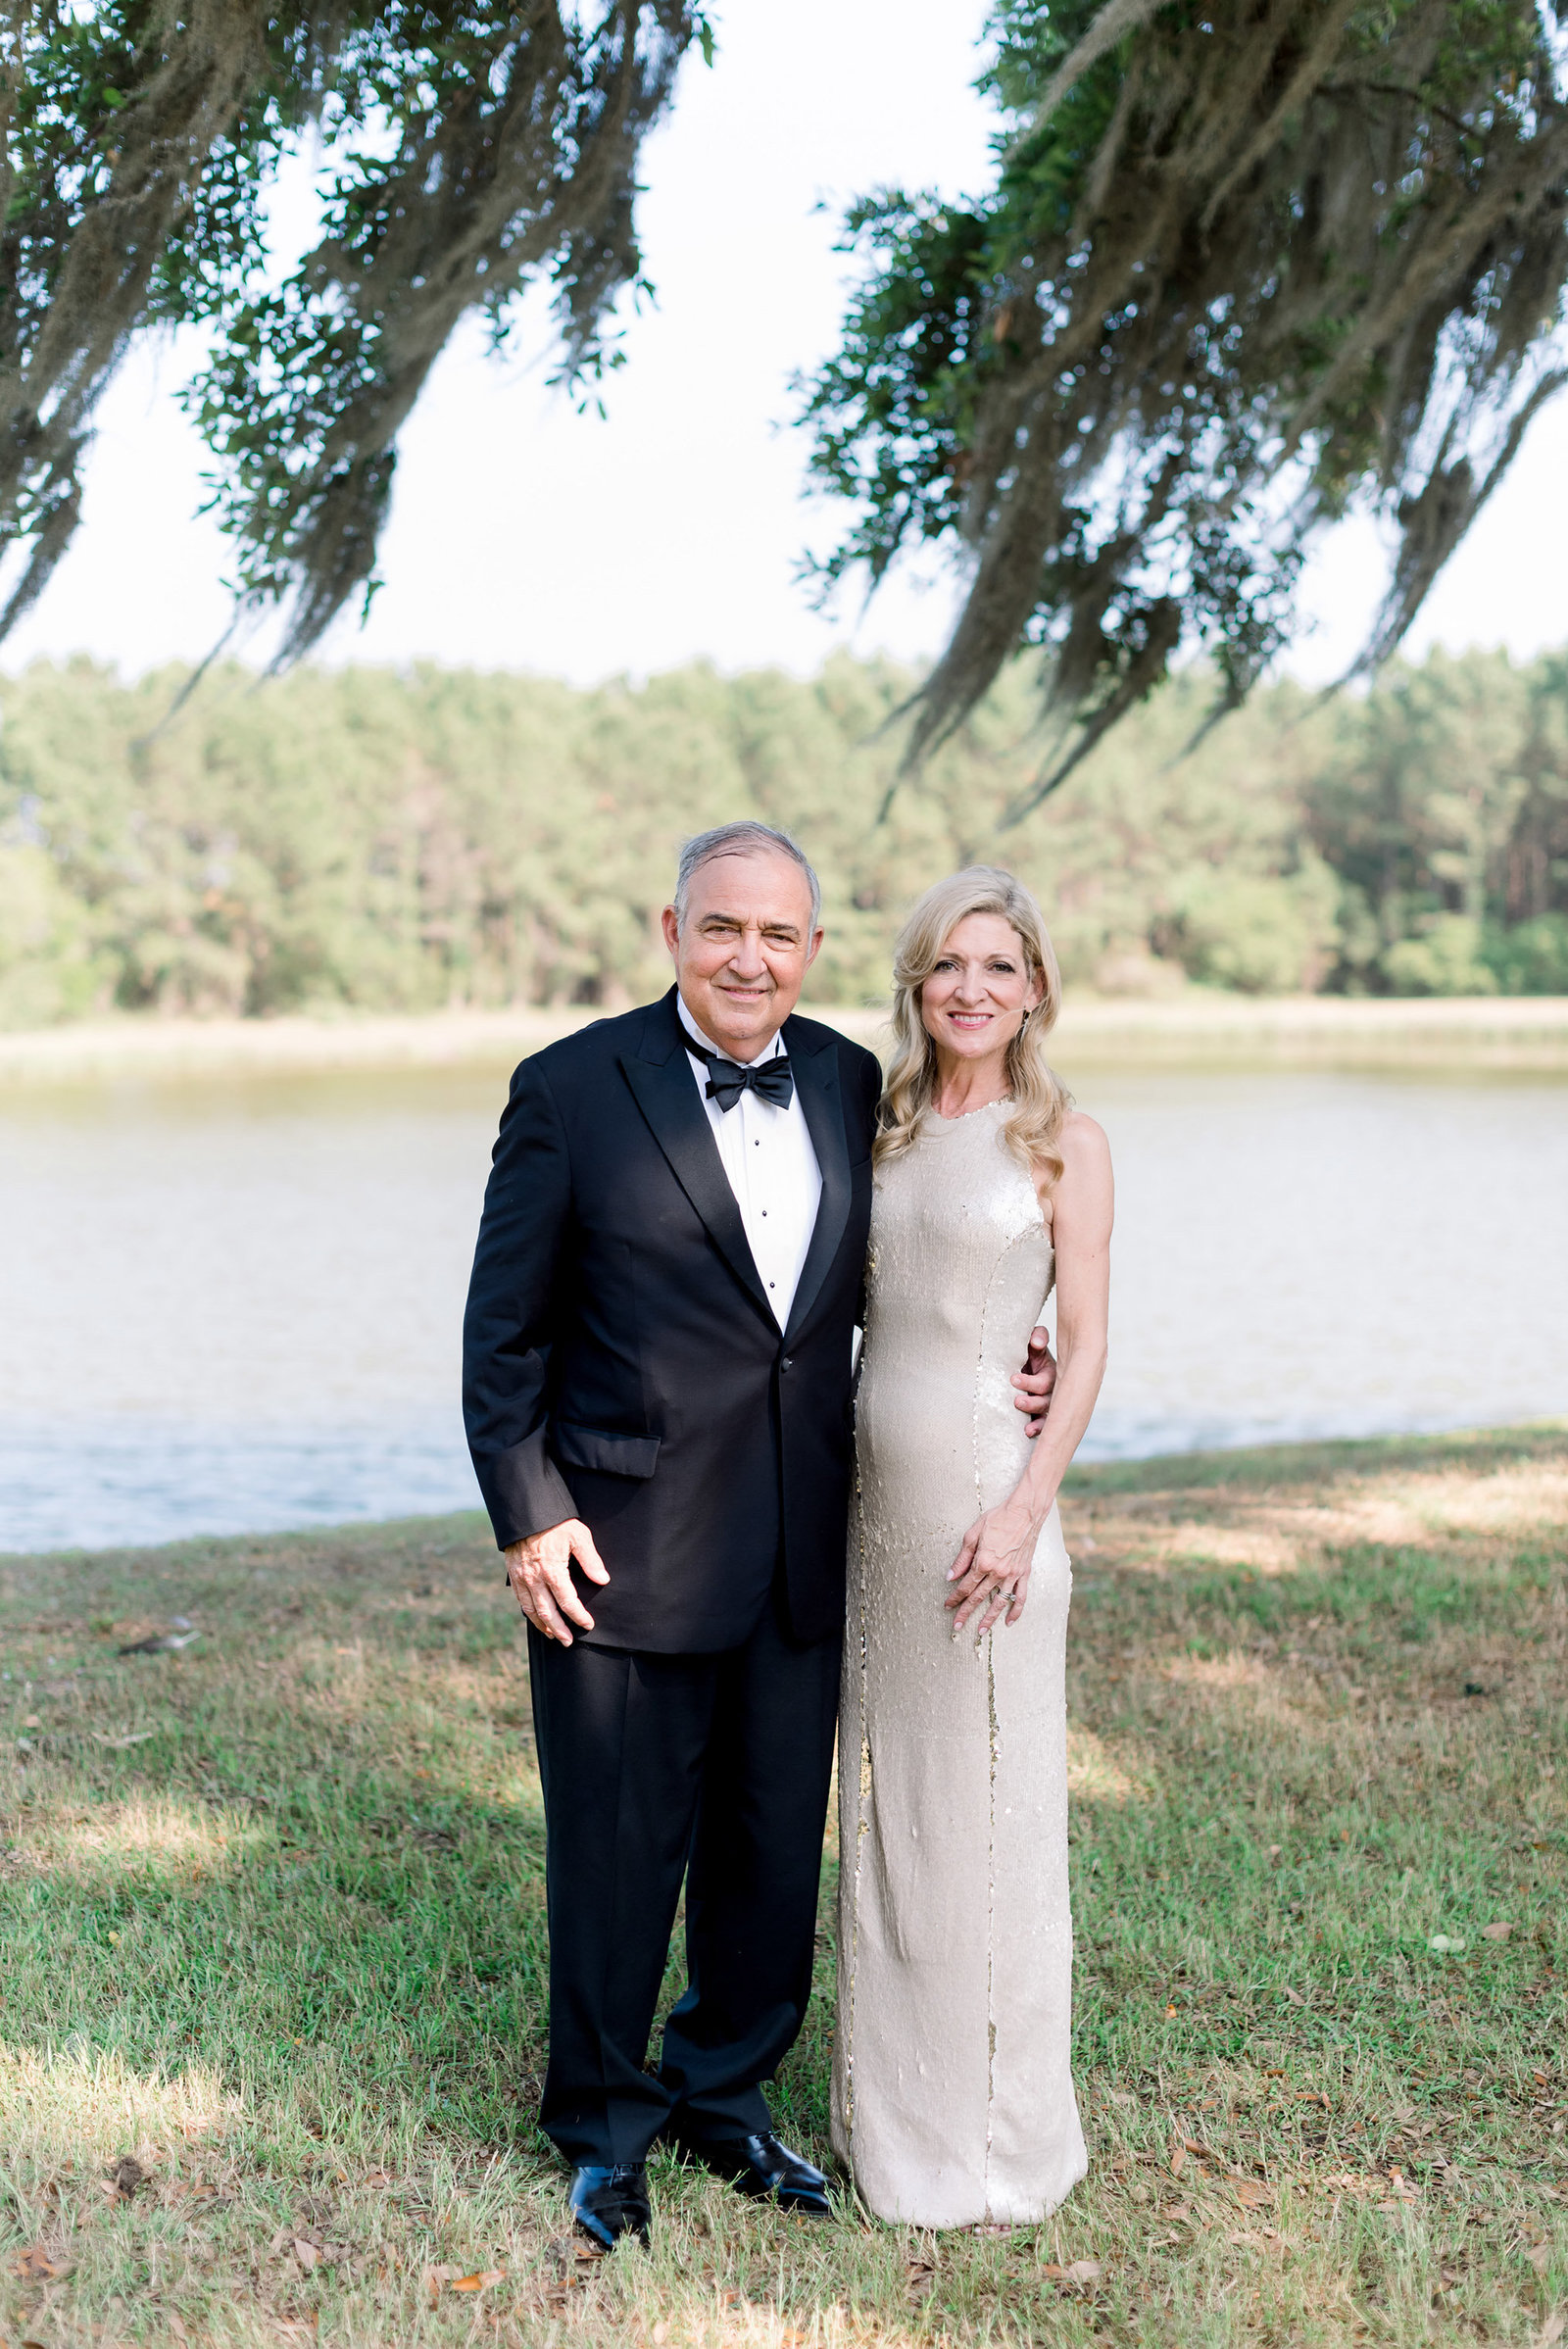 20190526-Pura-Soul-Photo-Caroline-Daniel-Wedding-217